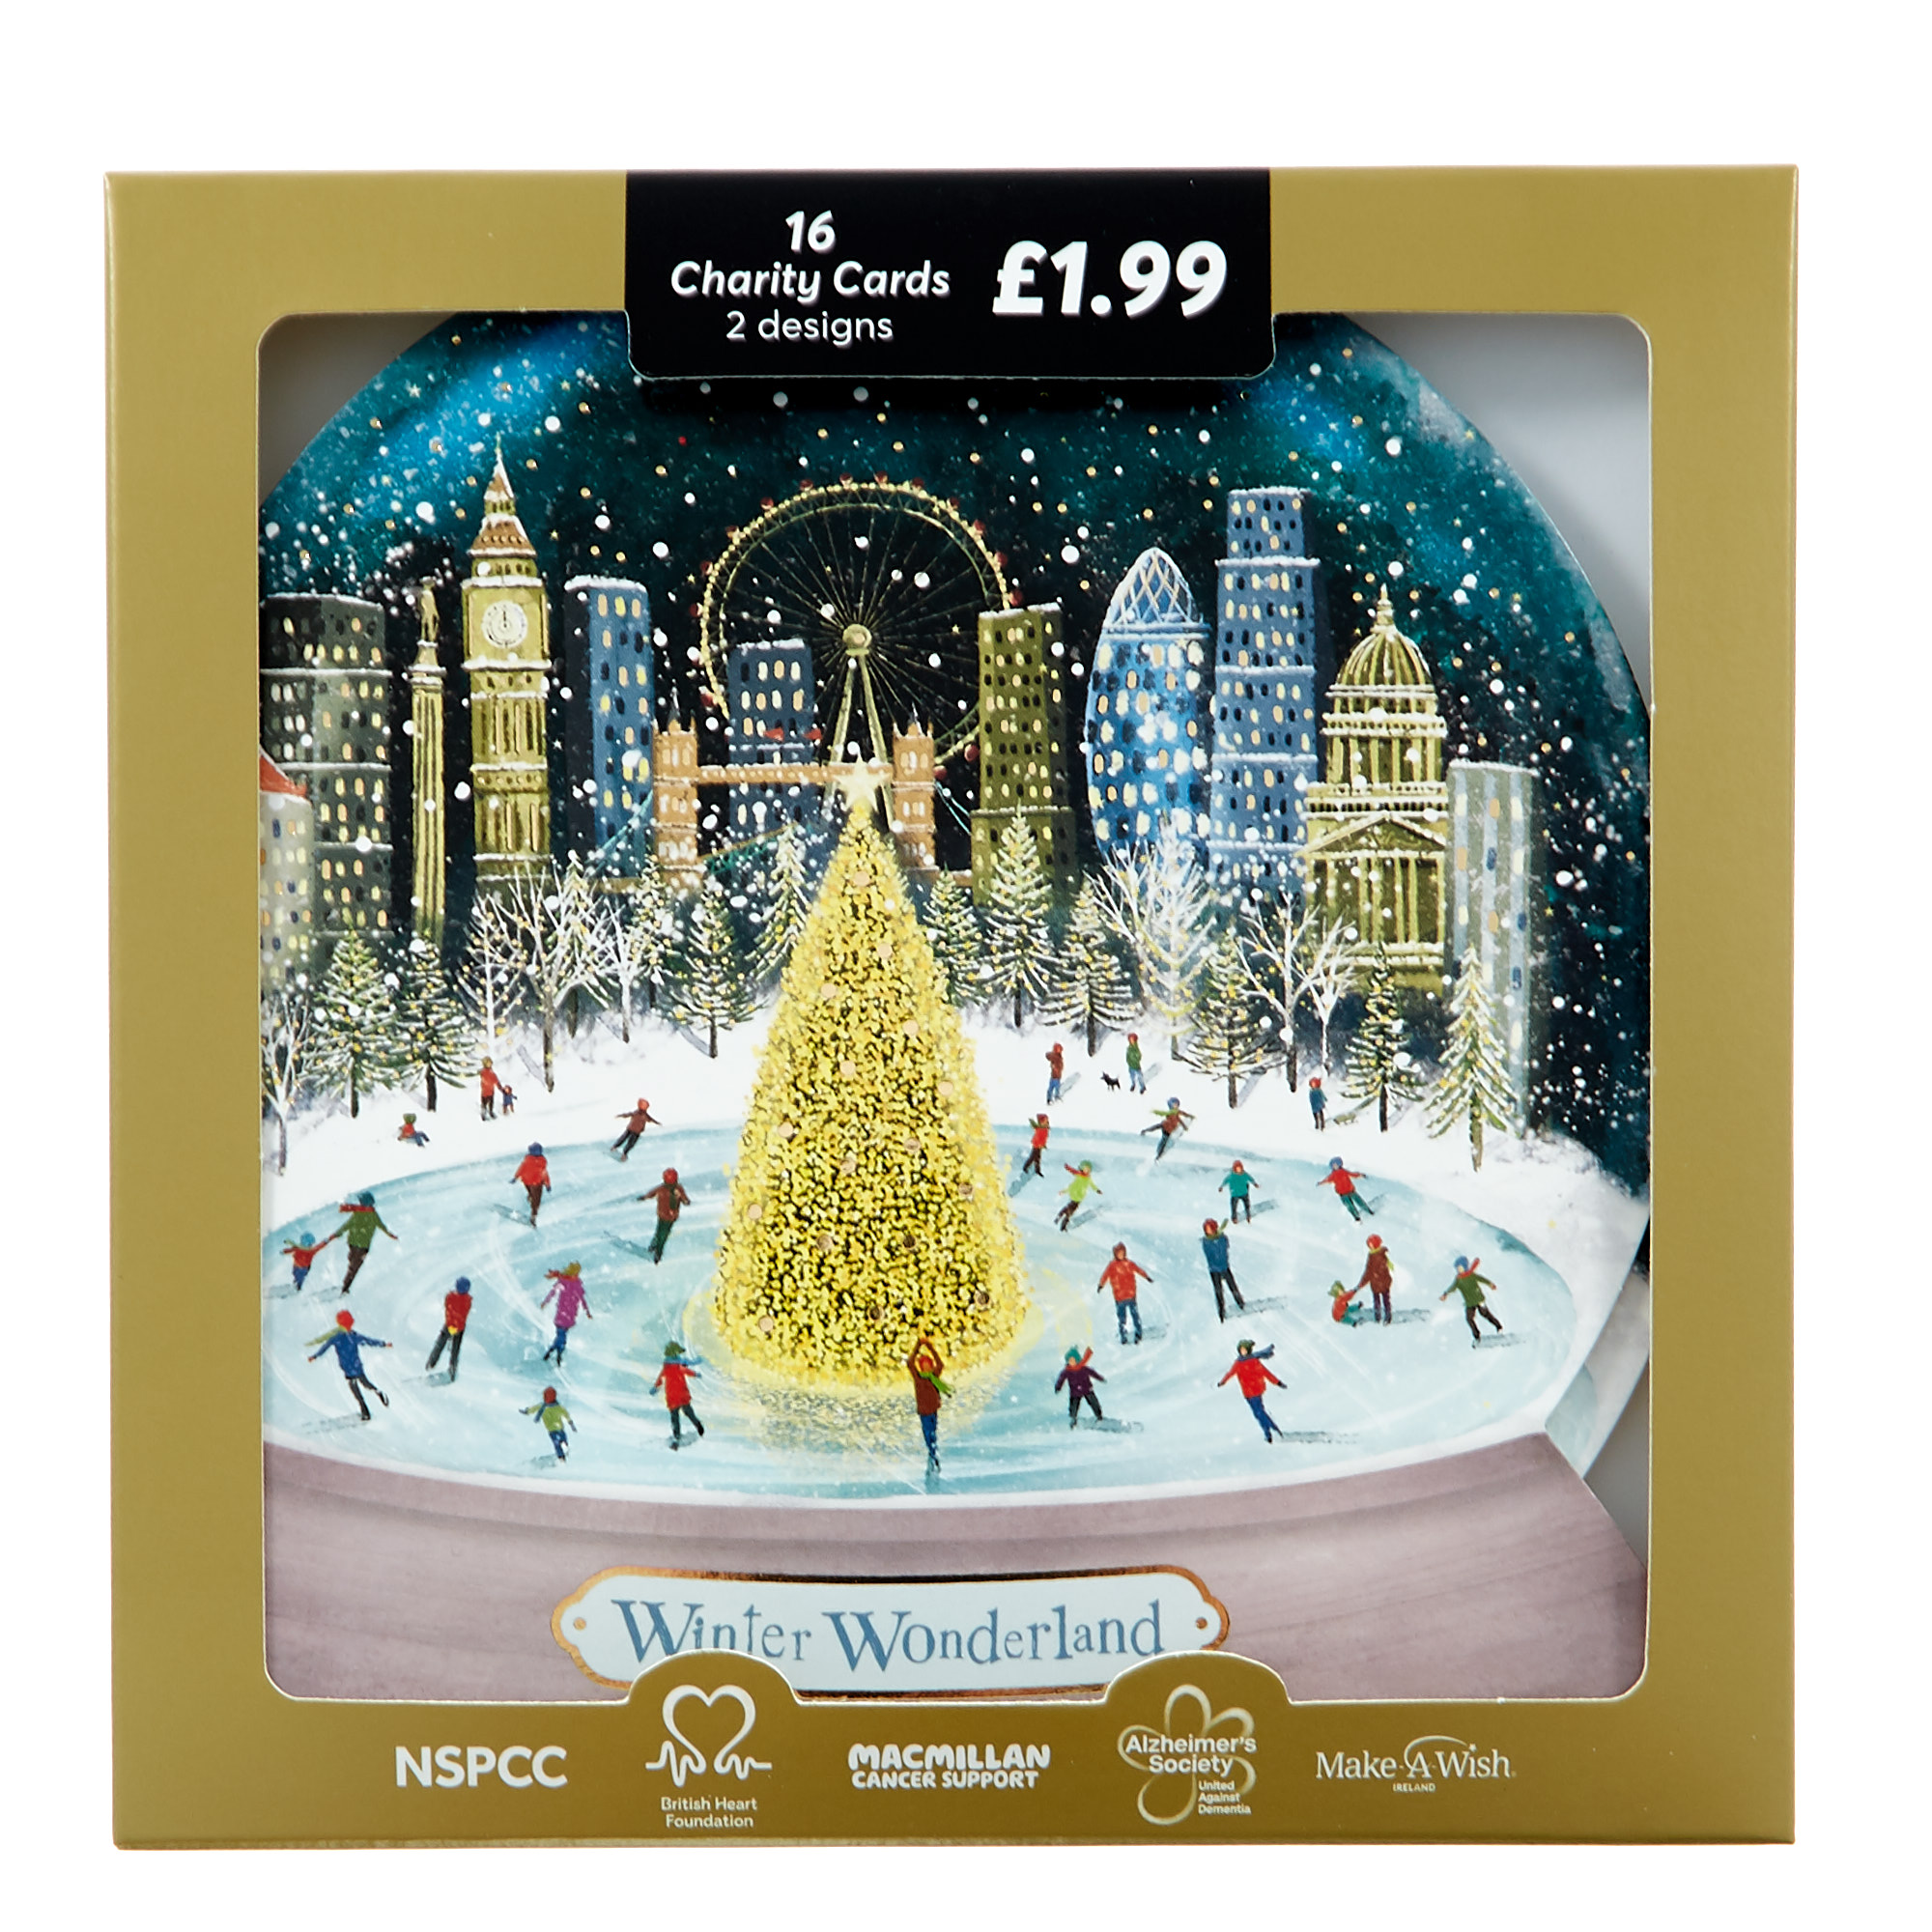 Buy 16 Snow Globe Charity Christmas Cards 2 Designs For Gbp 1 99 Card Factory Uk